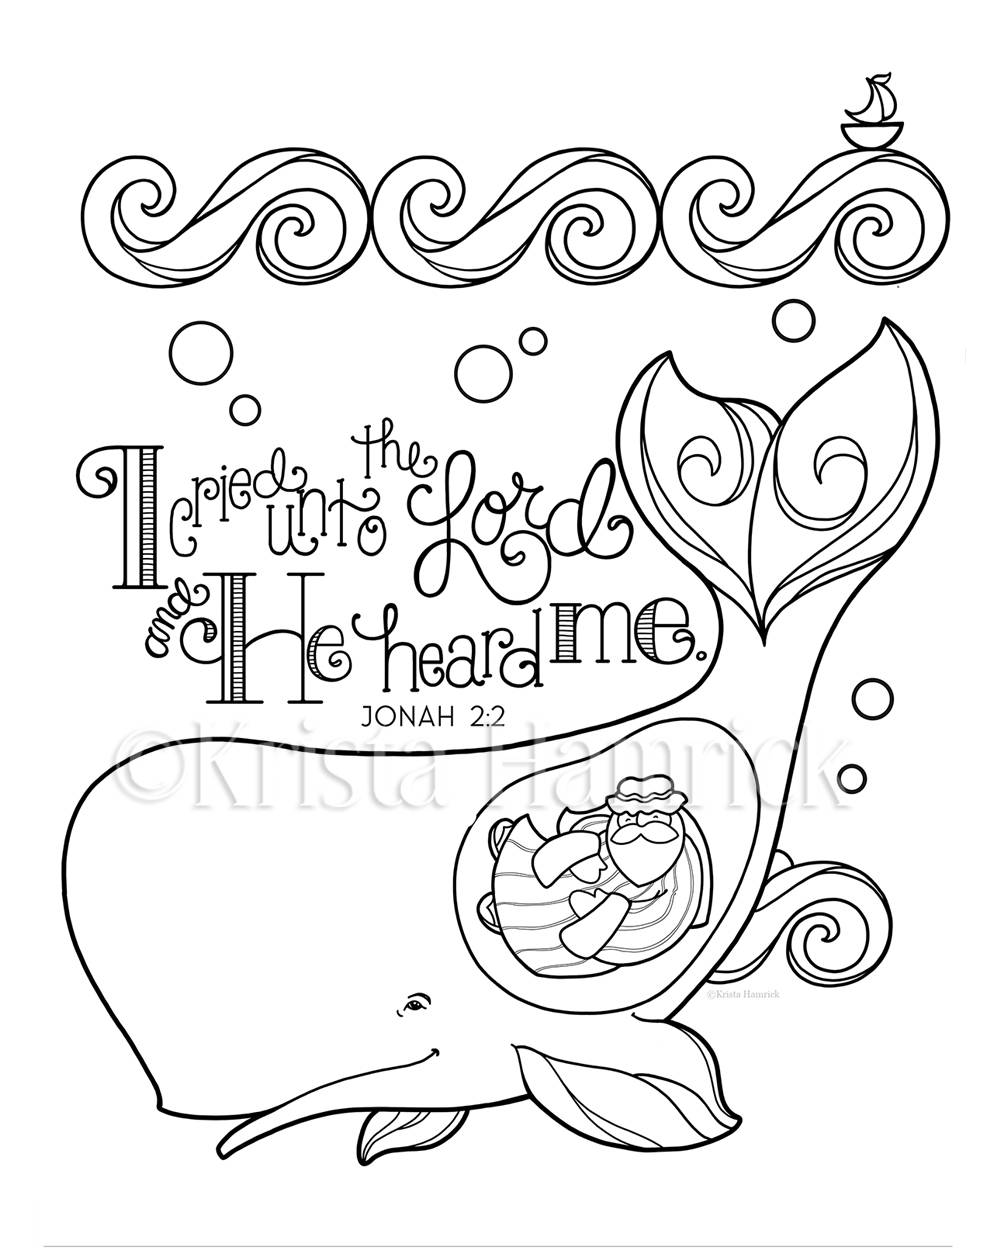 jonah and the whale coloring page jonah coloring page free download sunday school coloring and page jonah whale the coloring